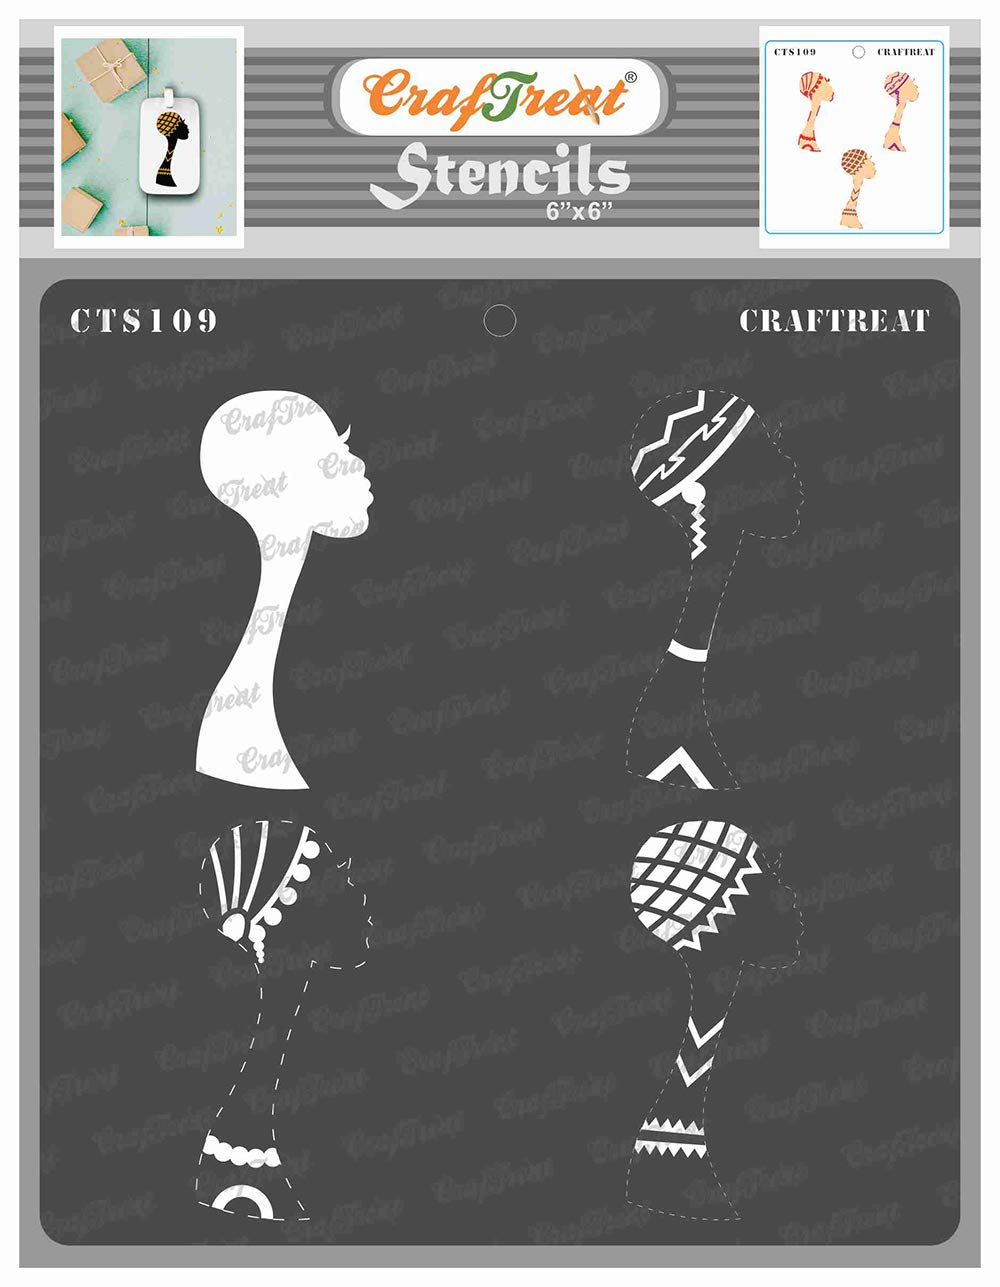 CrafTreat Tribal Stencils for Painting on Wood, Wall, Tile, Canvas, Paper, Fabric and Floor - Trendy Tribal Girl - 6x6 Inches - Reusable DIY Art and Craft Stencils - Women Face Stencil